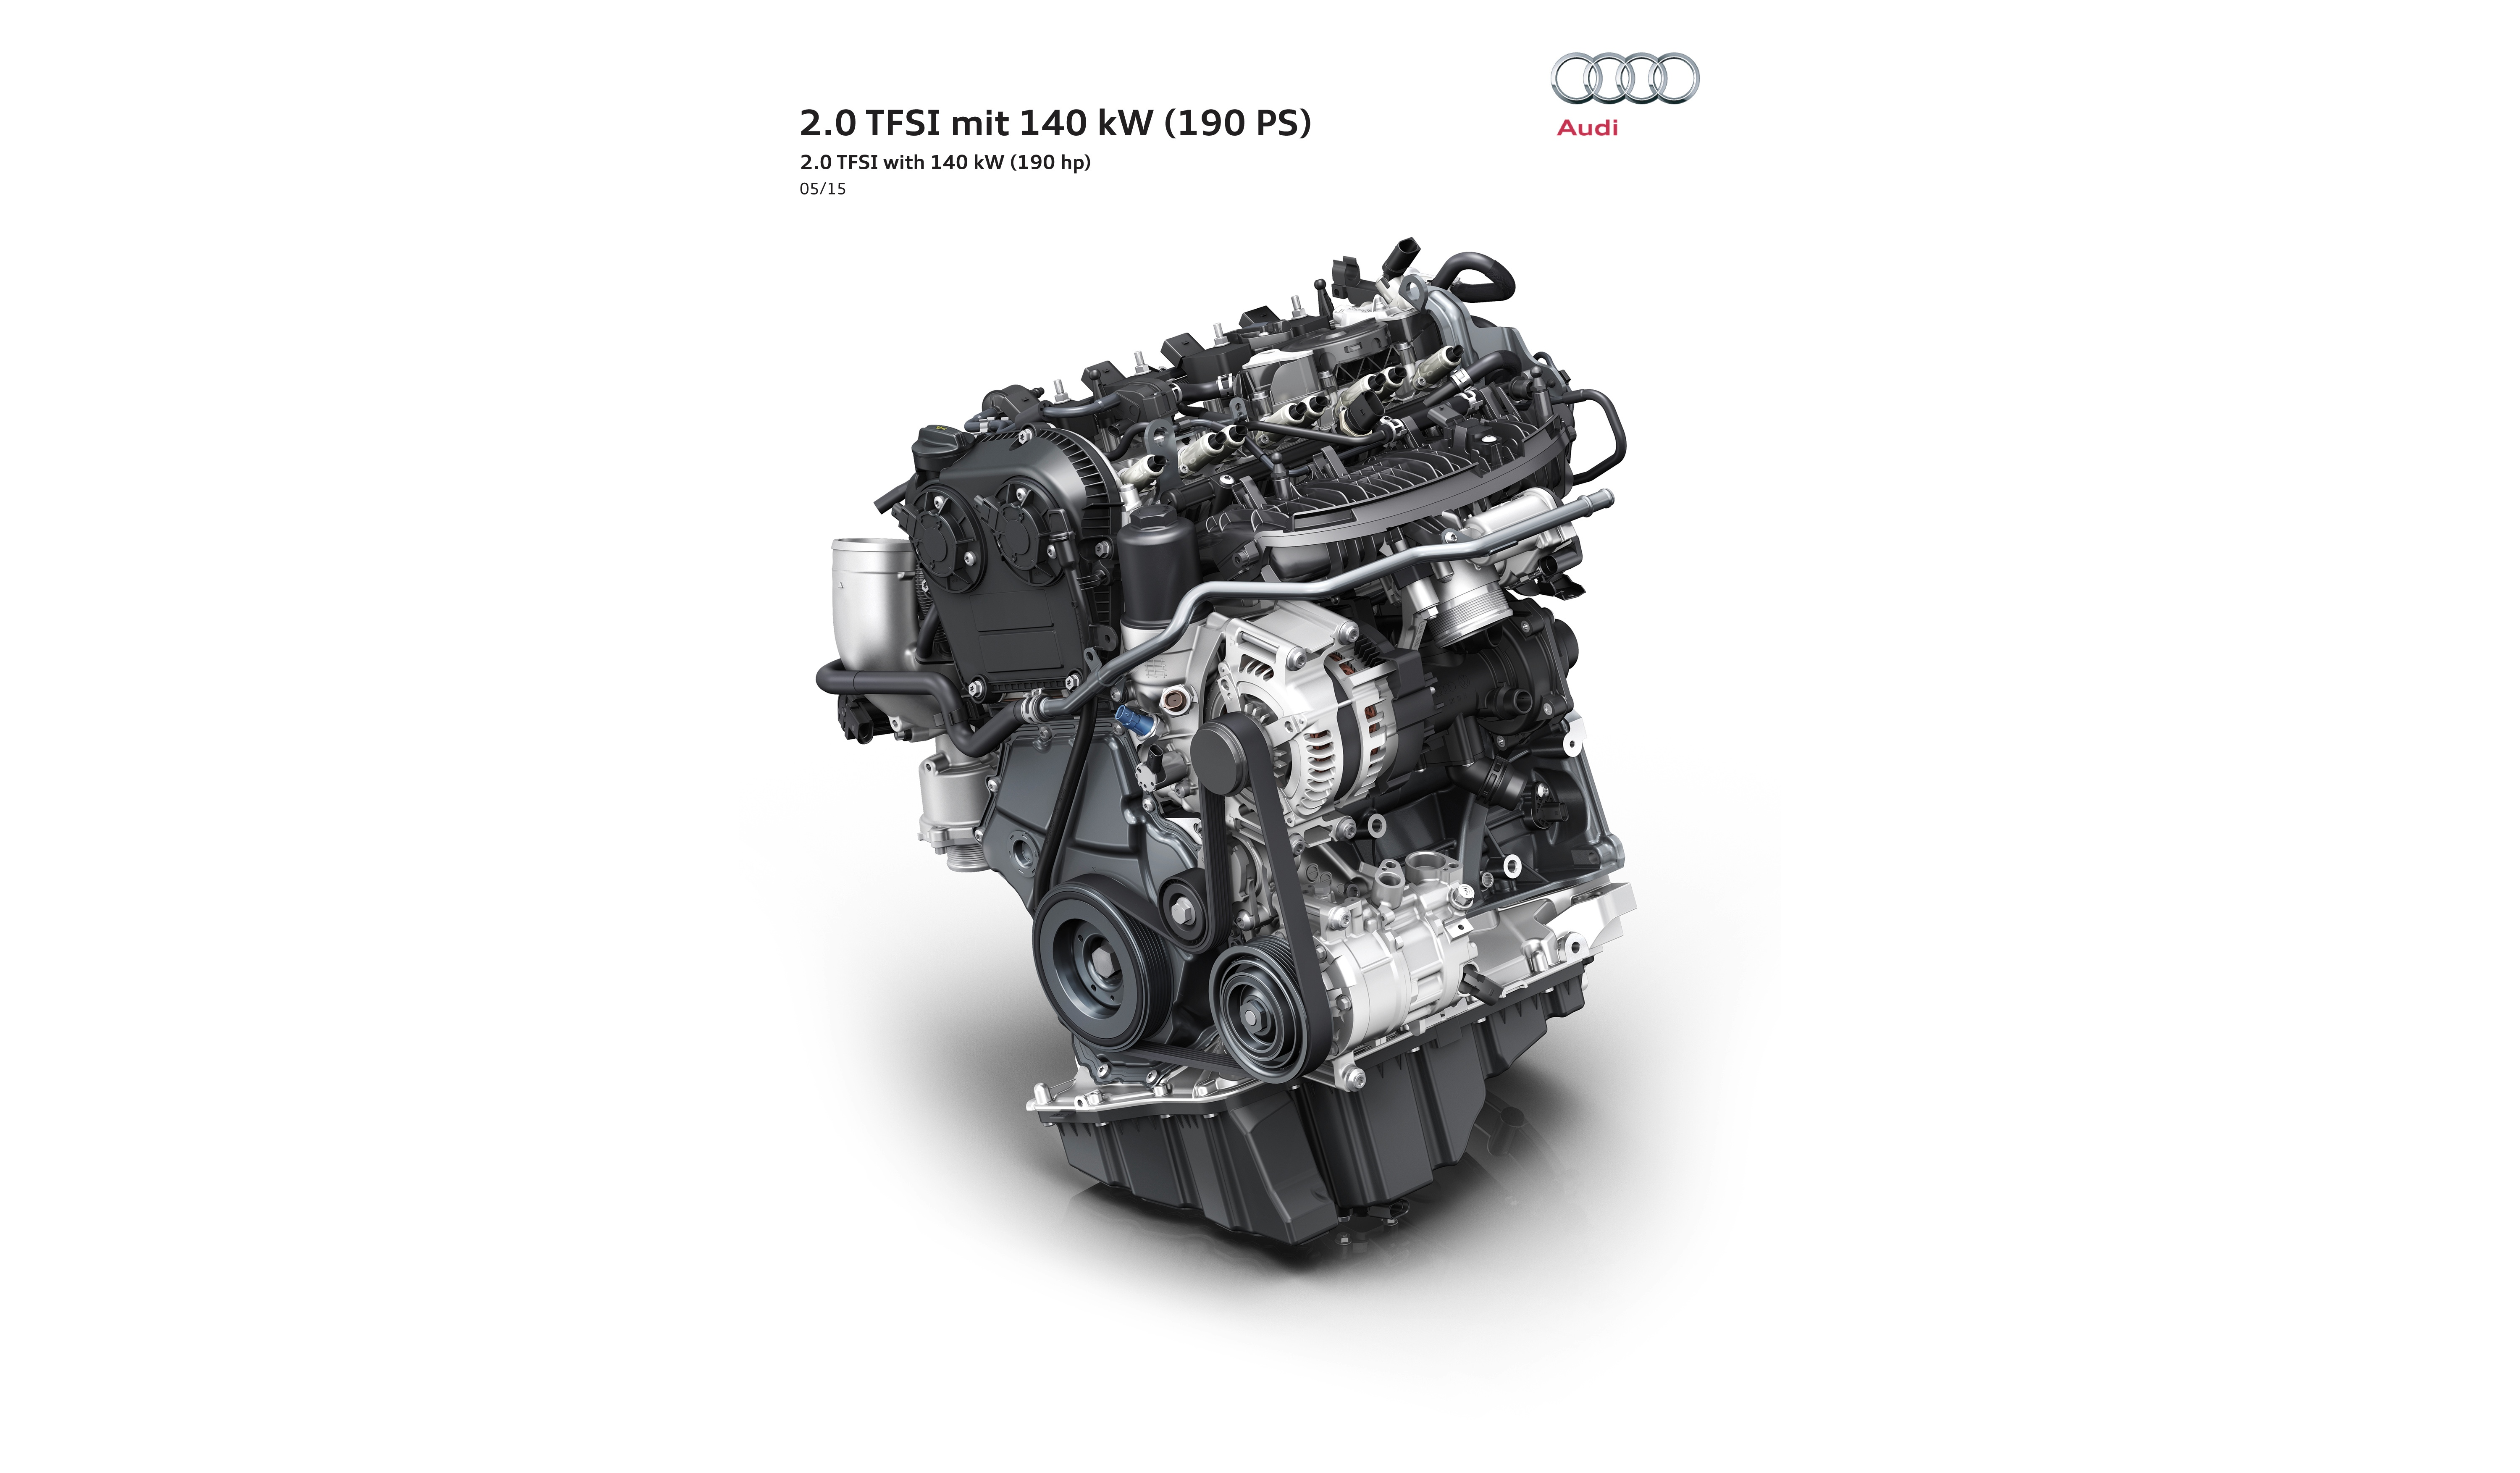 audi unveils new 2 0 tfsi for 2016 a4 190 hp consumes less than 5 l 100km autoevolution. Black Bedroom Furniture Sets. Home Design Ideas